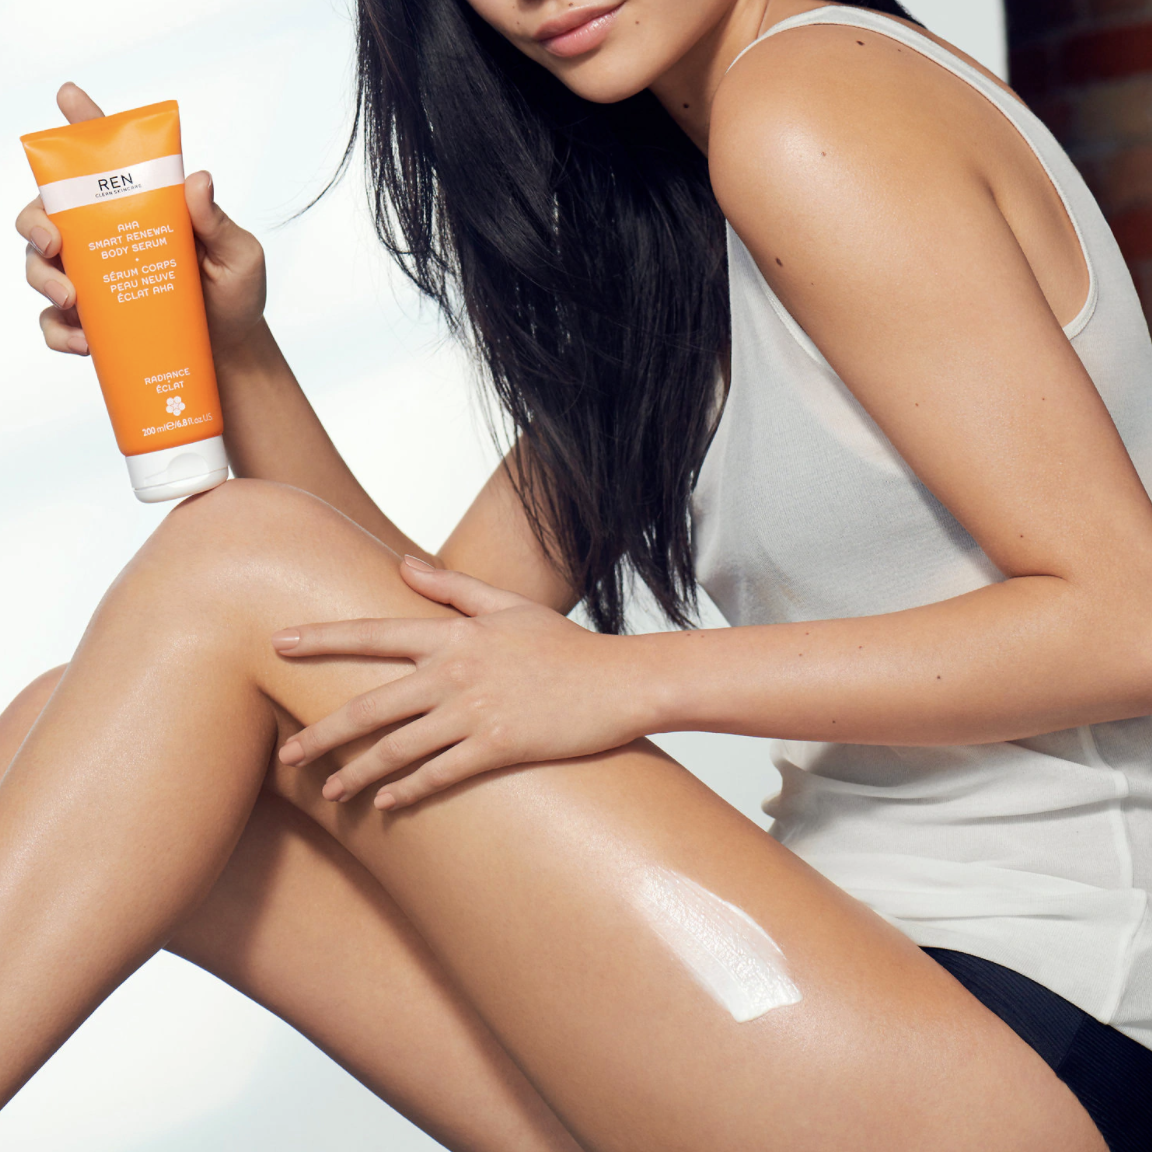 model with the bottle and a smudge of the product on her thigh